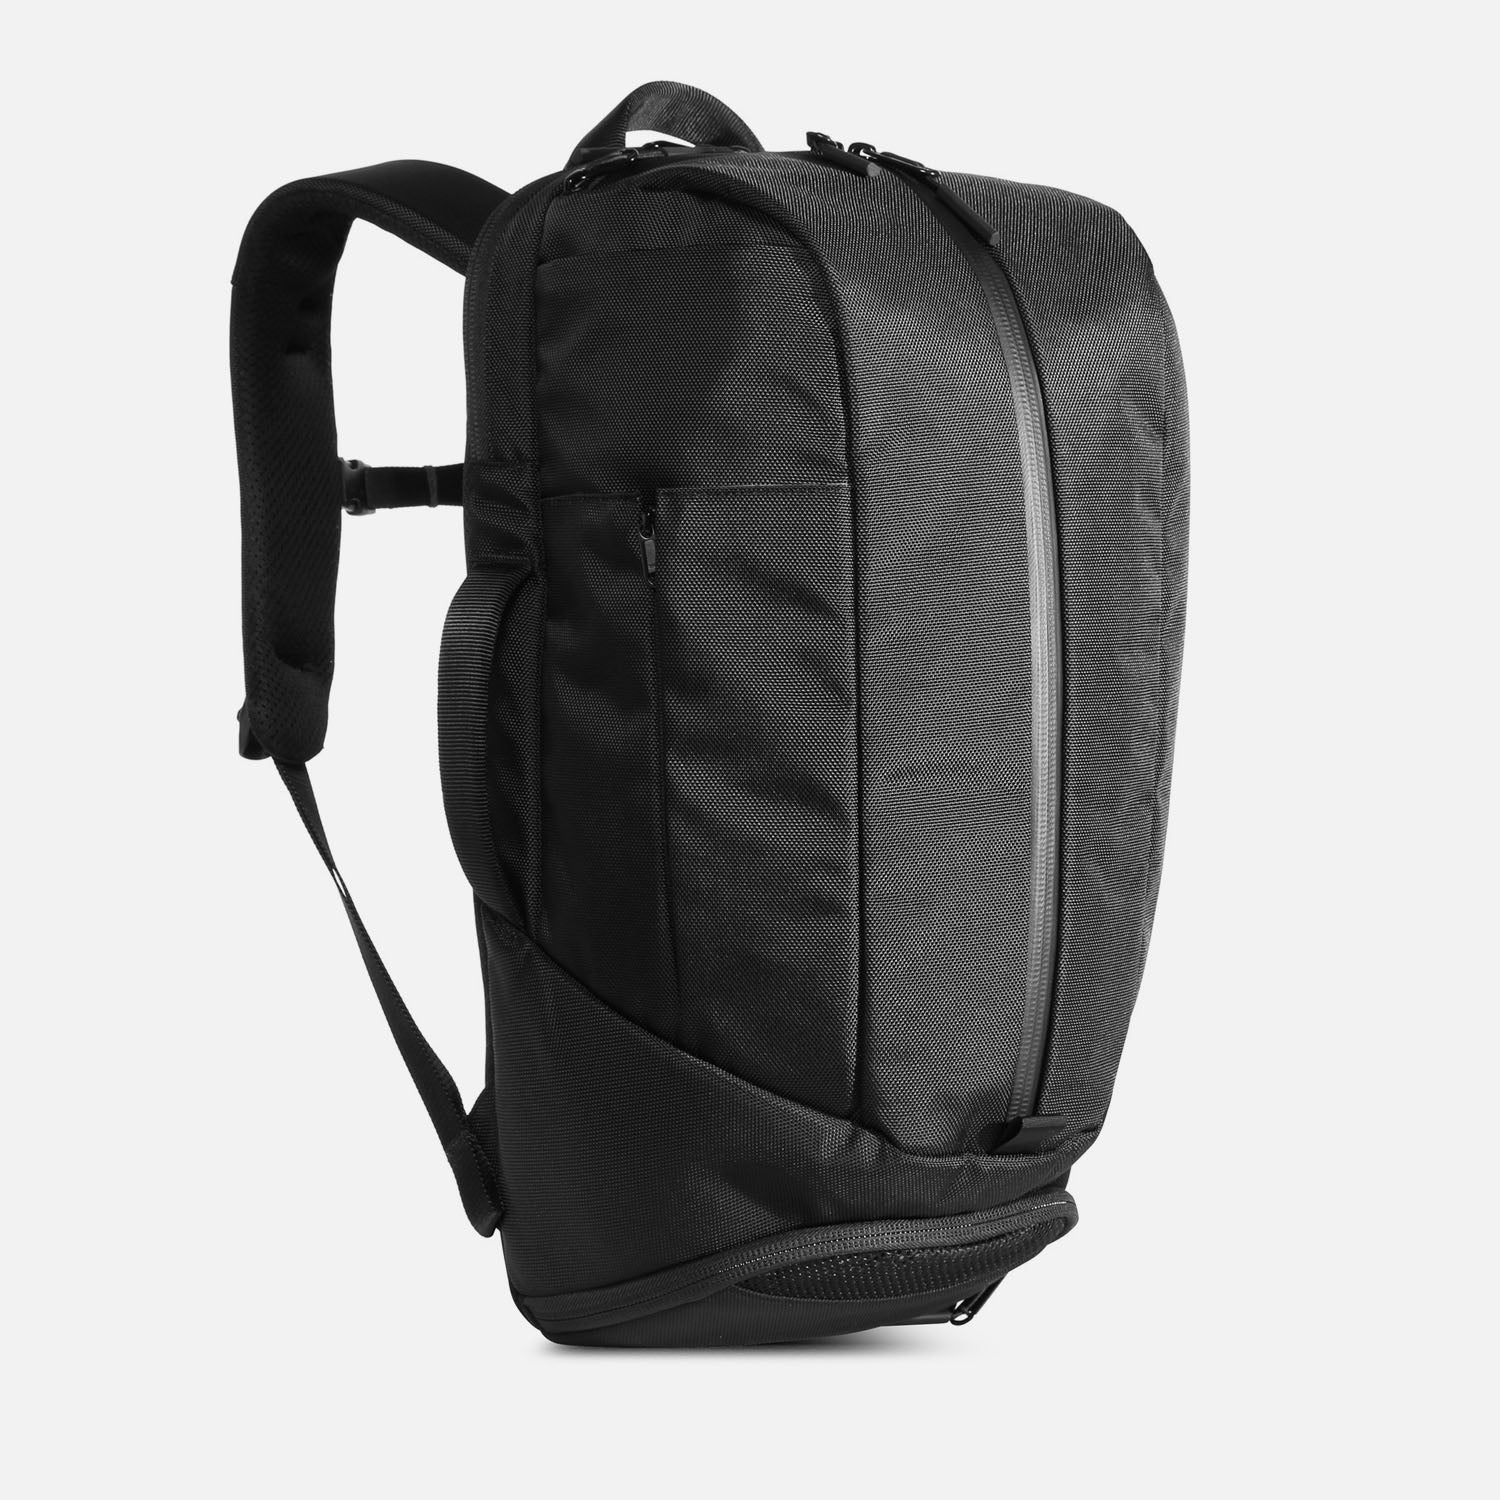 Duffel Pack 2 (Black)